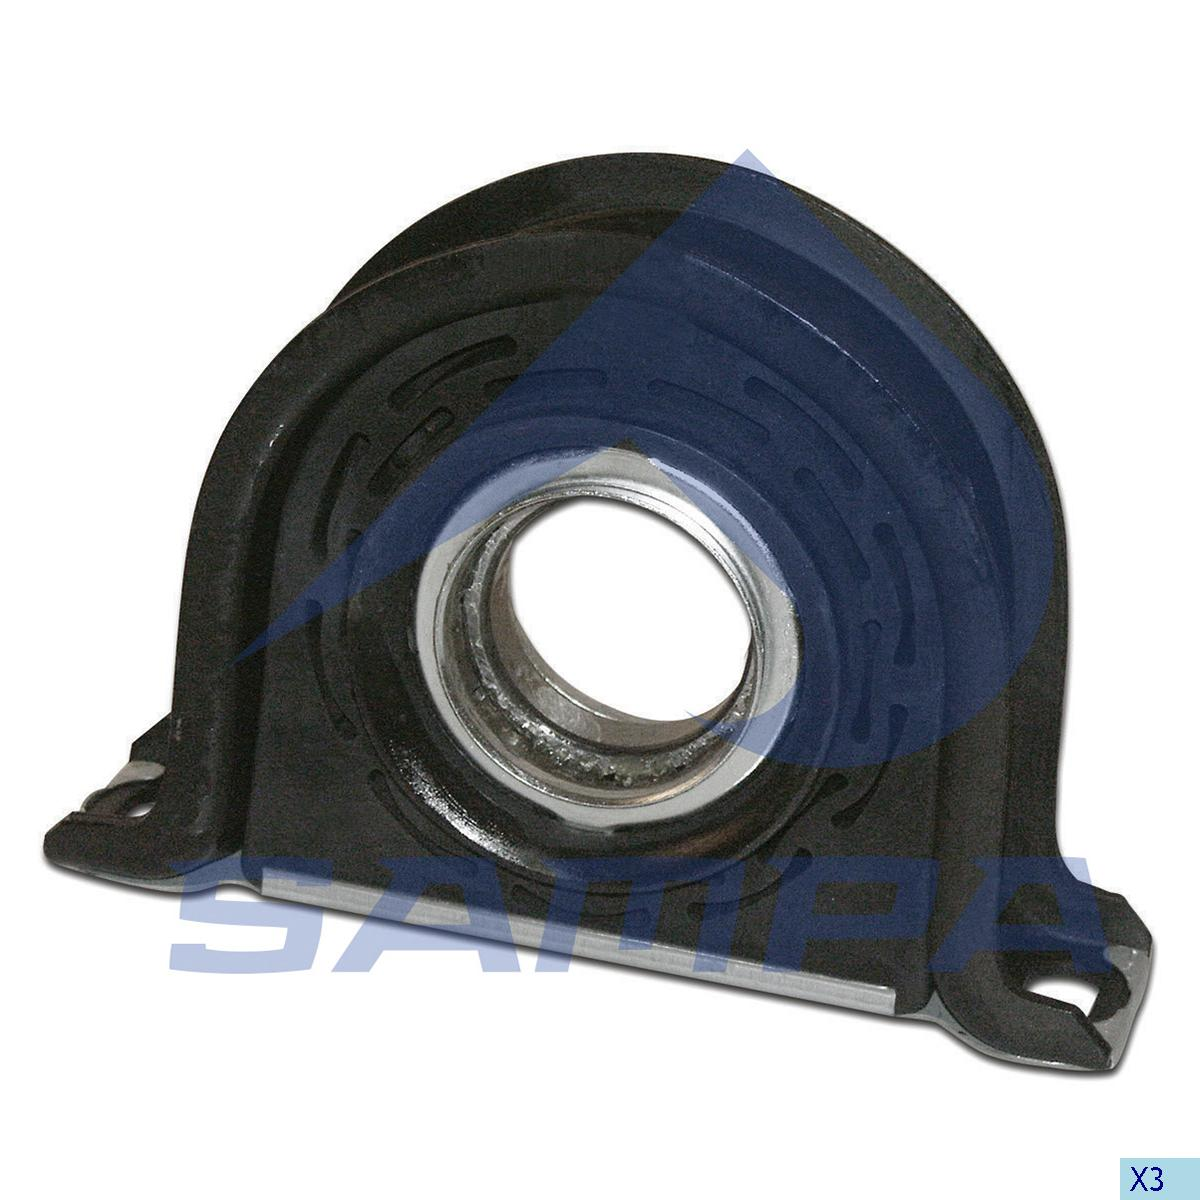 Propeller Shaft Bearing, R.V.I., Propeller Shaft